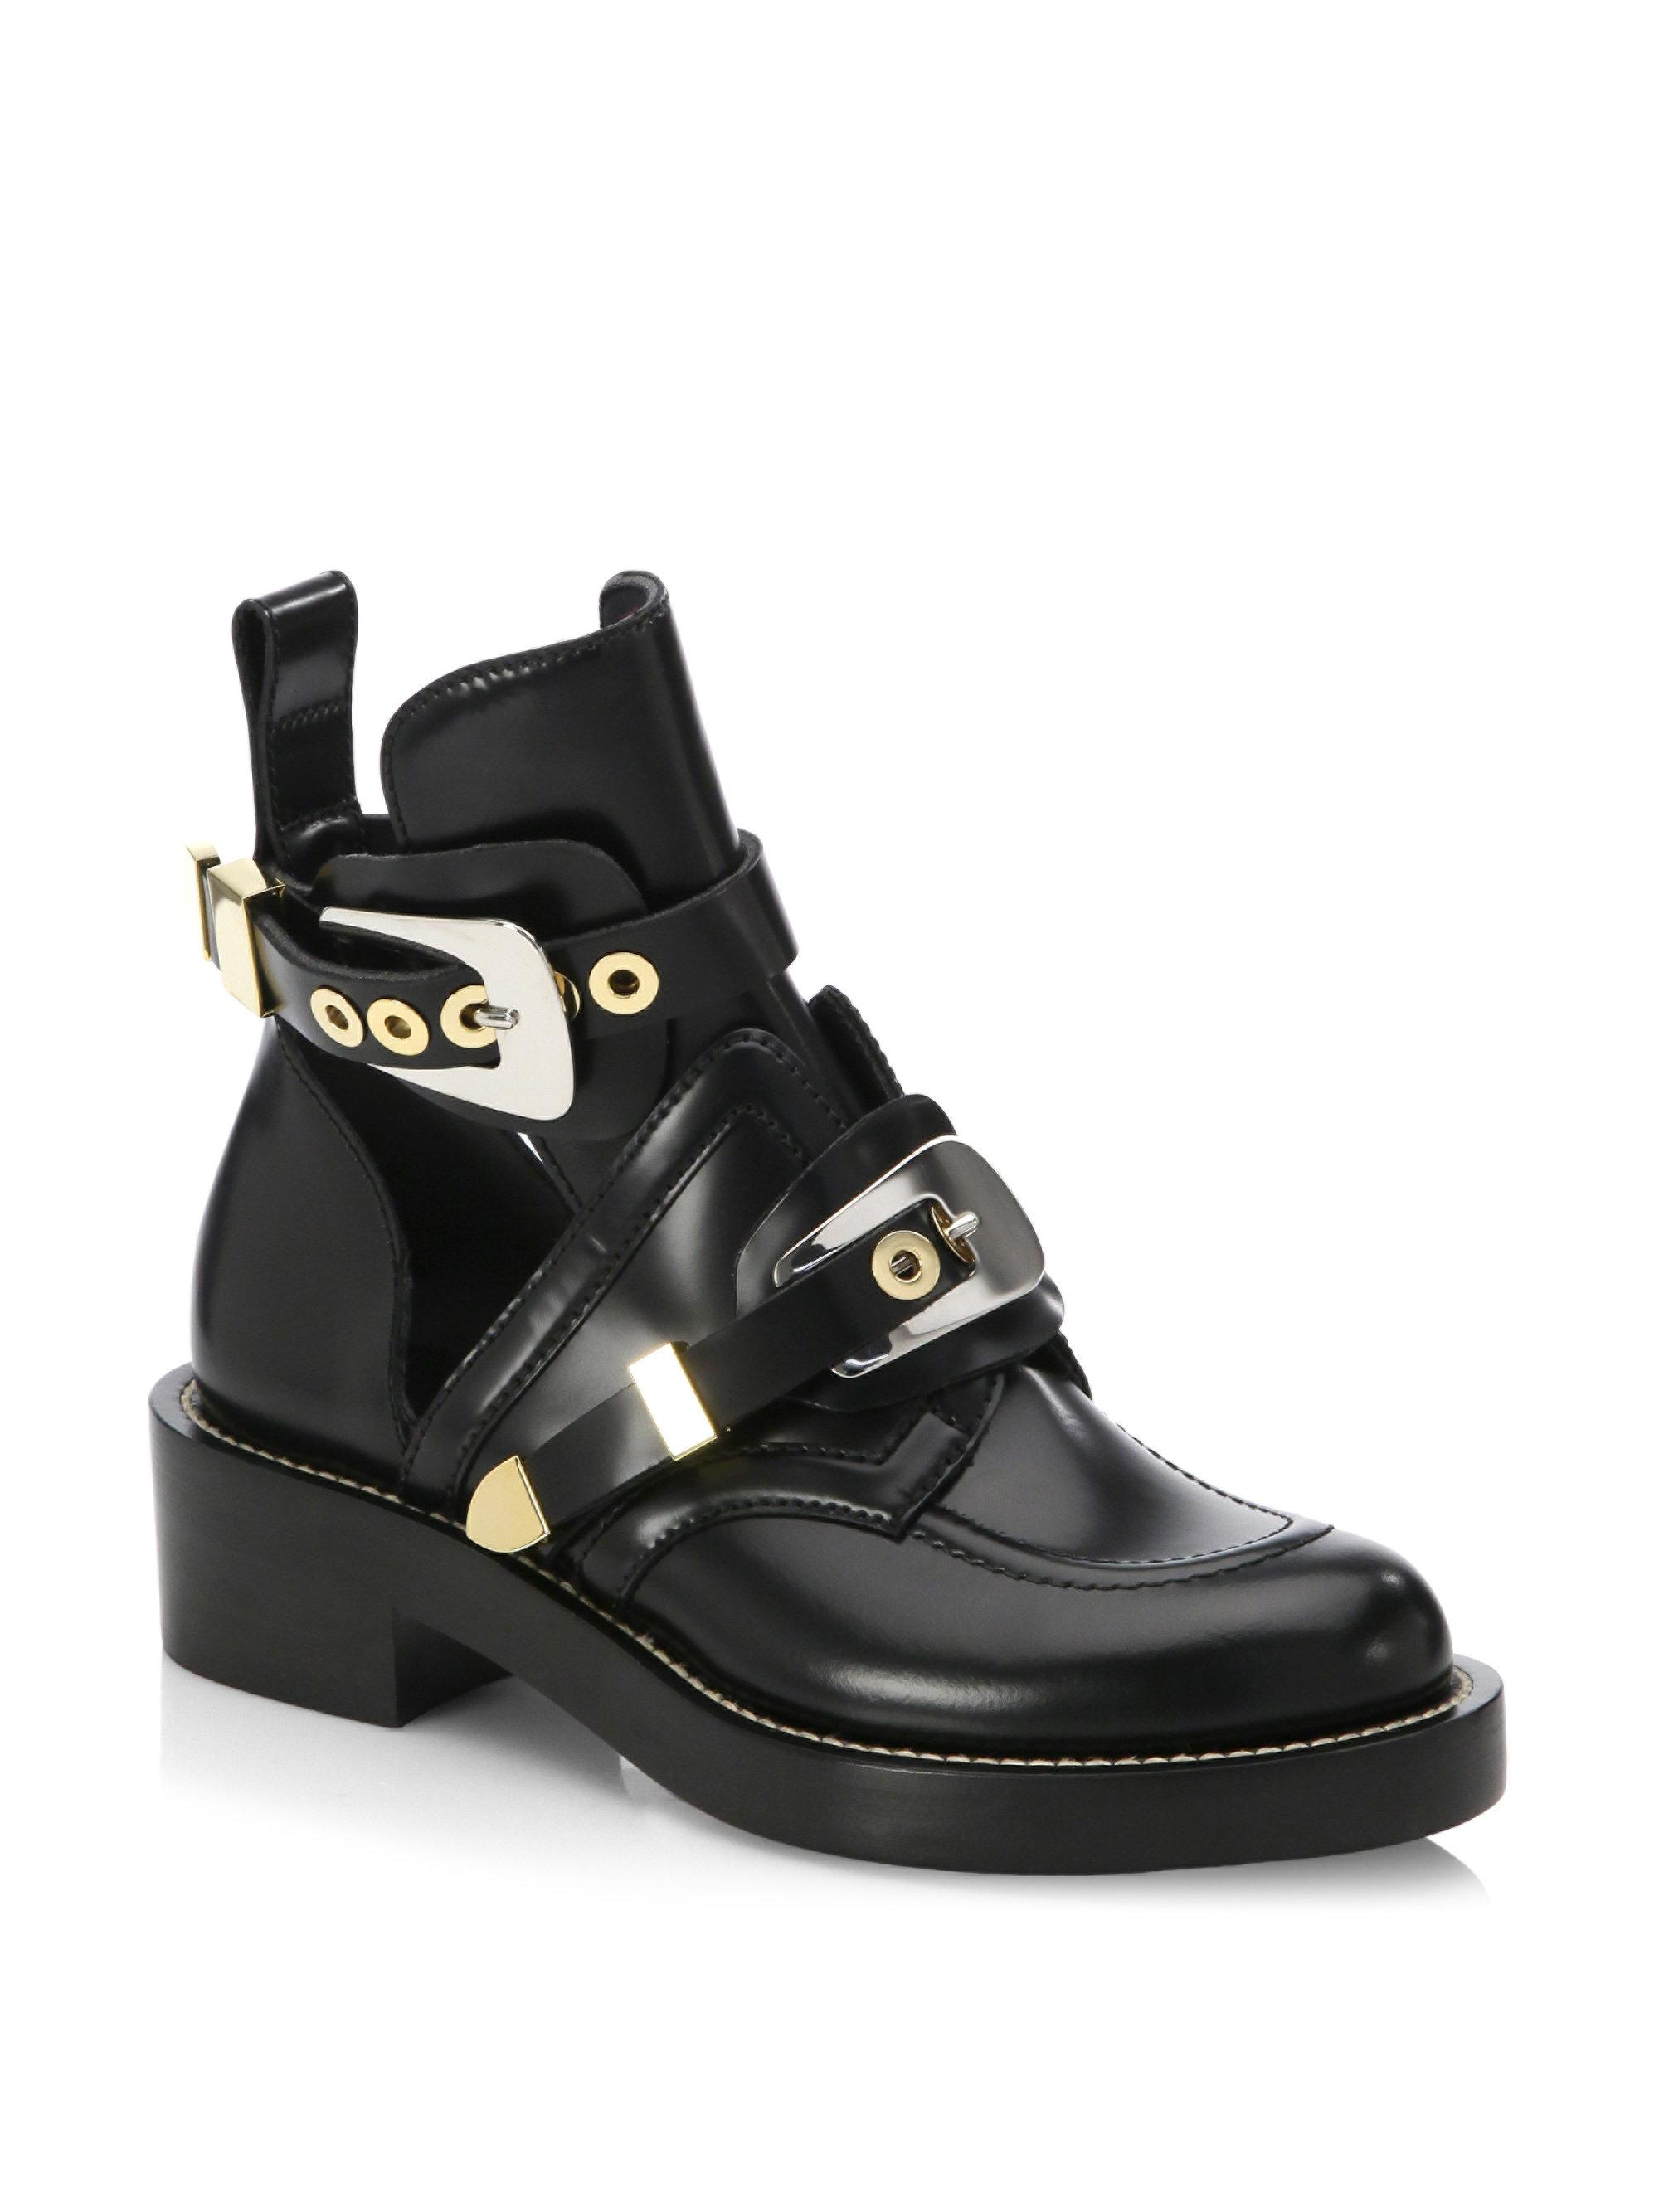 Balenciaga. Women's Black Cutout Leather Creeper Boots